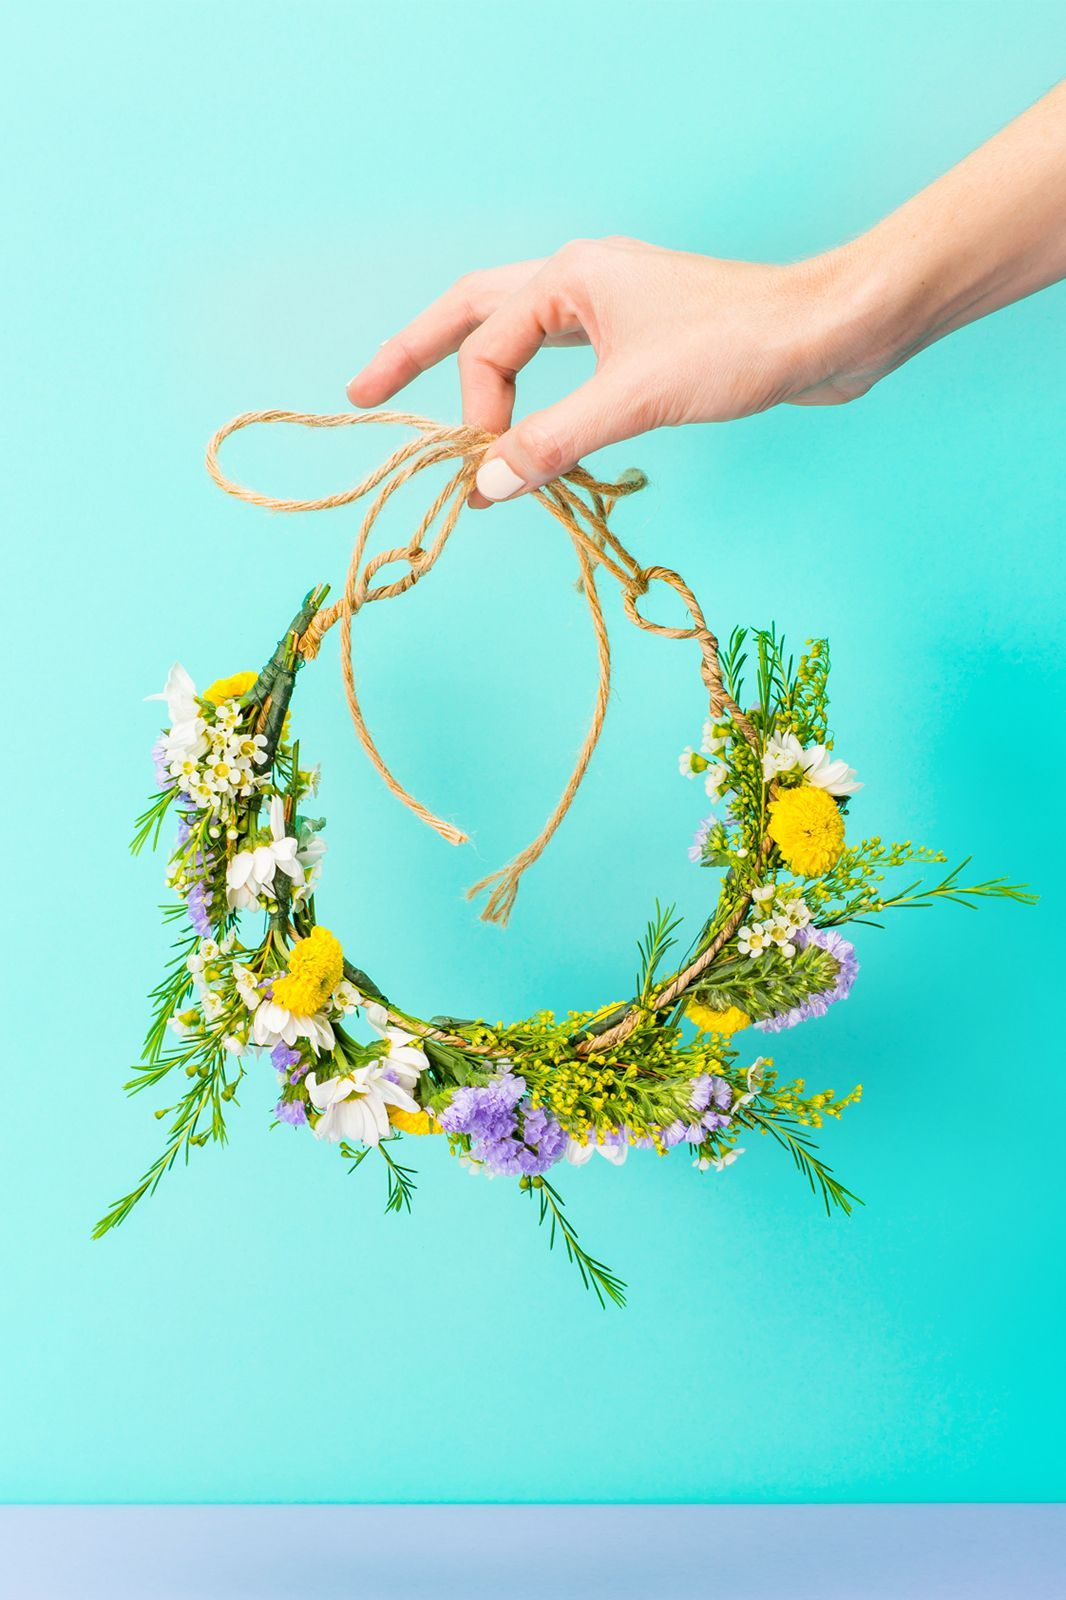 How to make a stunning flower crown in under 20 minutes pinterest this is the easiest diy flower crown ever refinery29 httprefinery29how to make a flower crownslide 15 step 15 admire your workcause izmirmasajfo